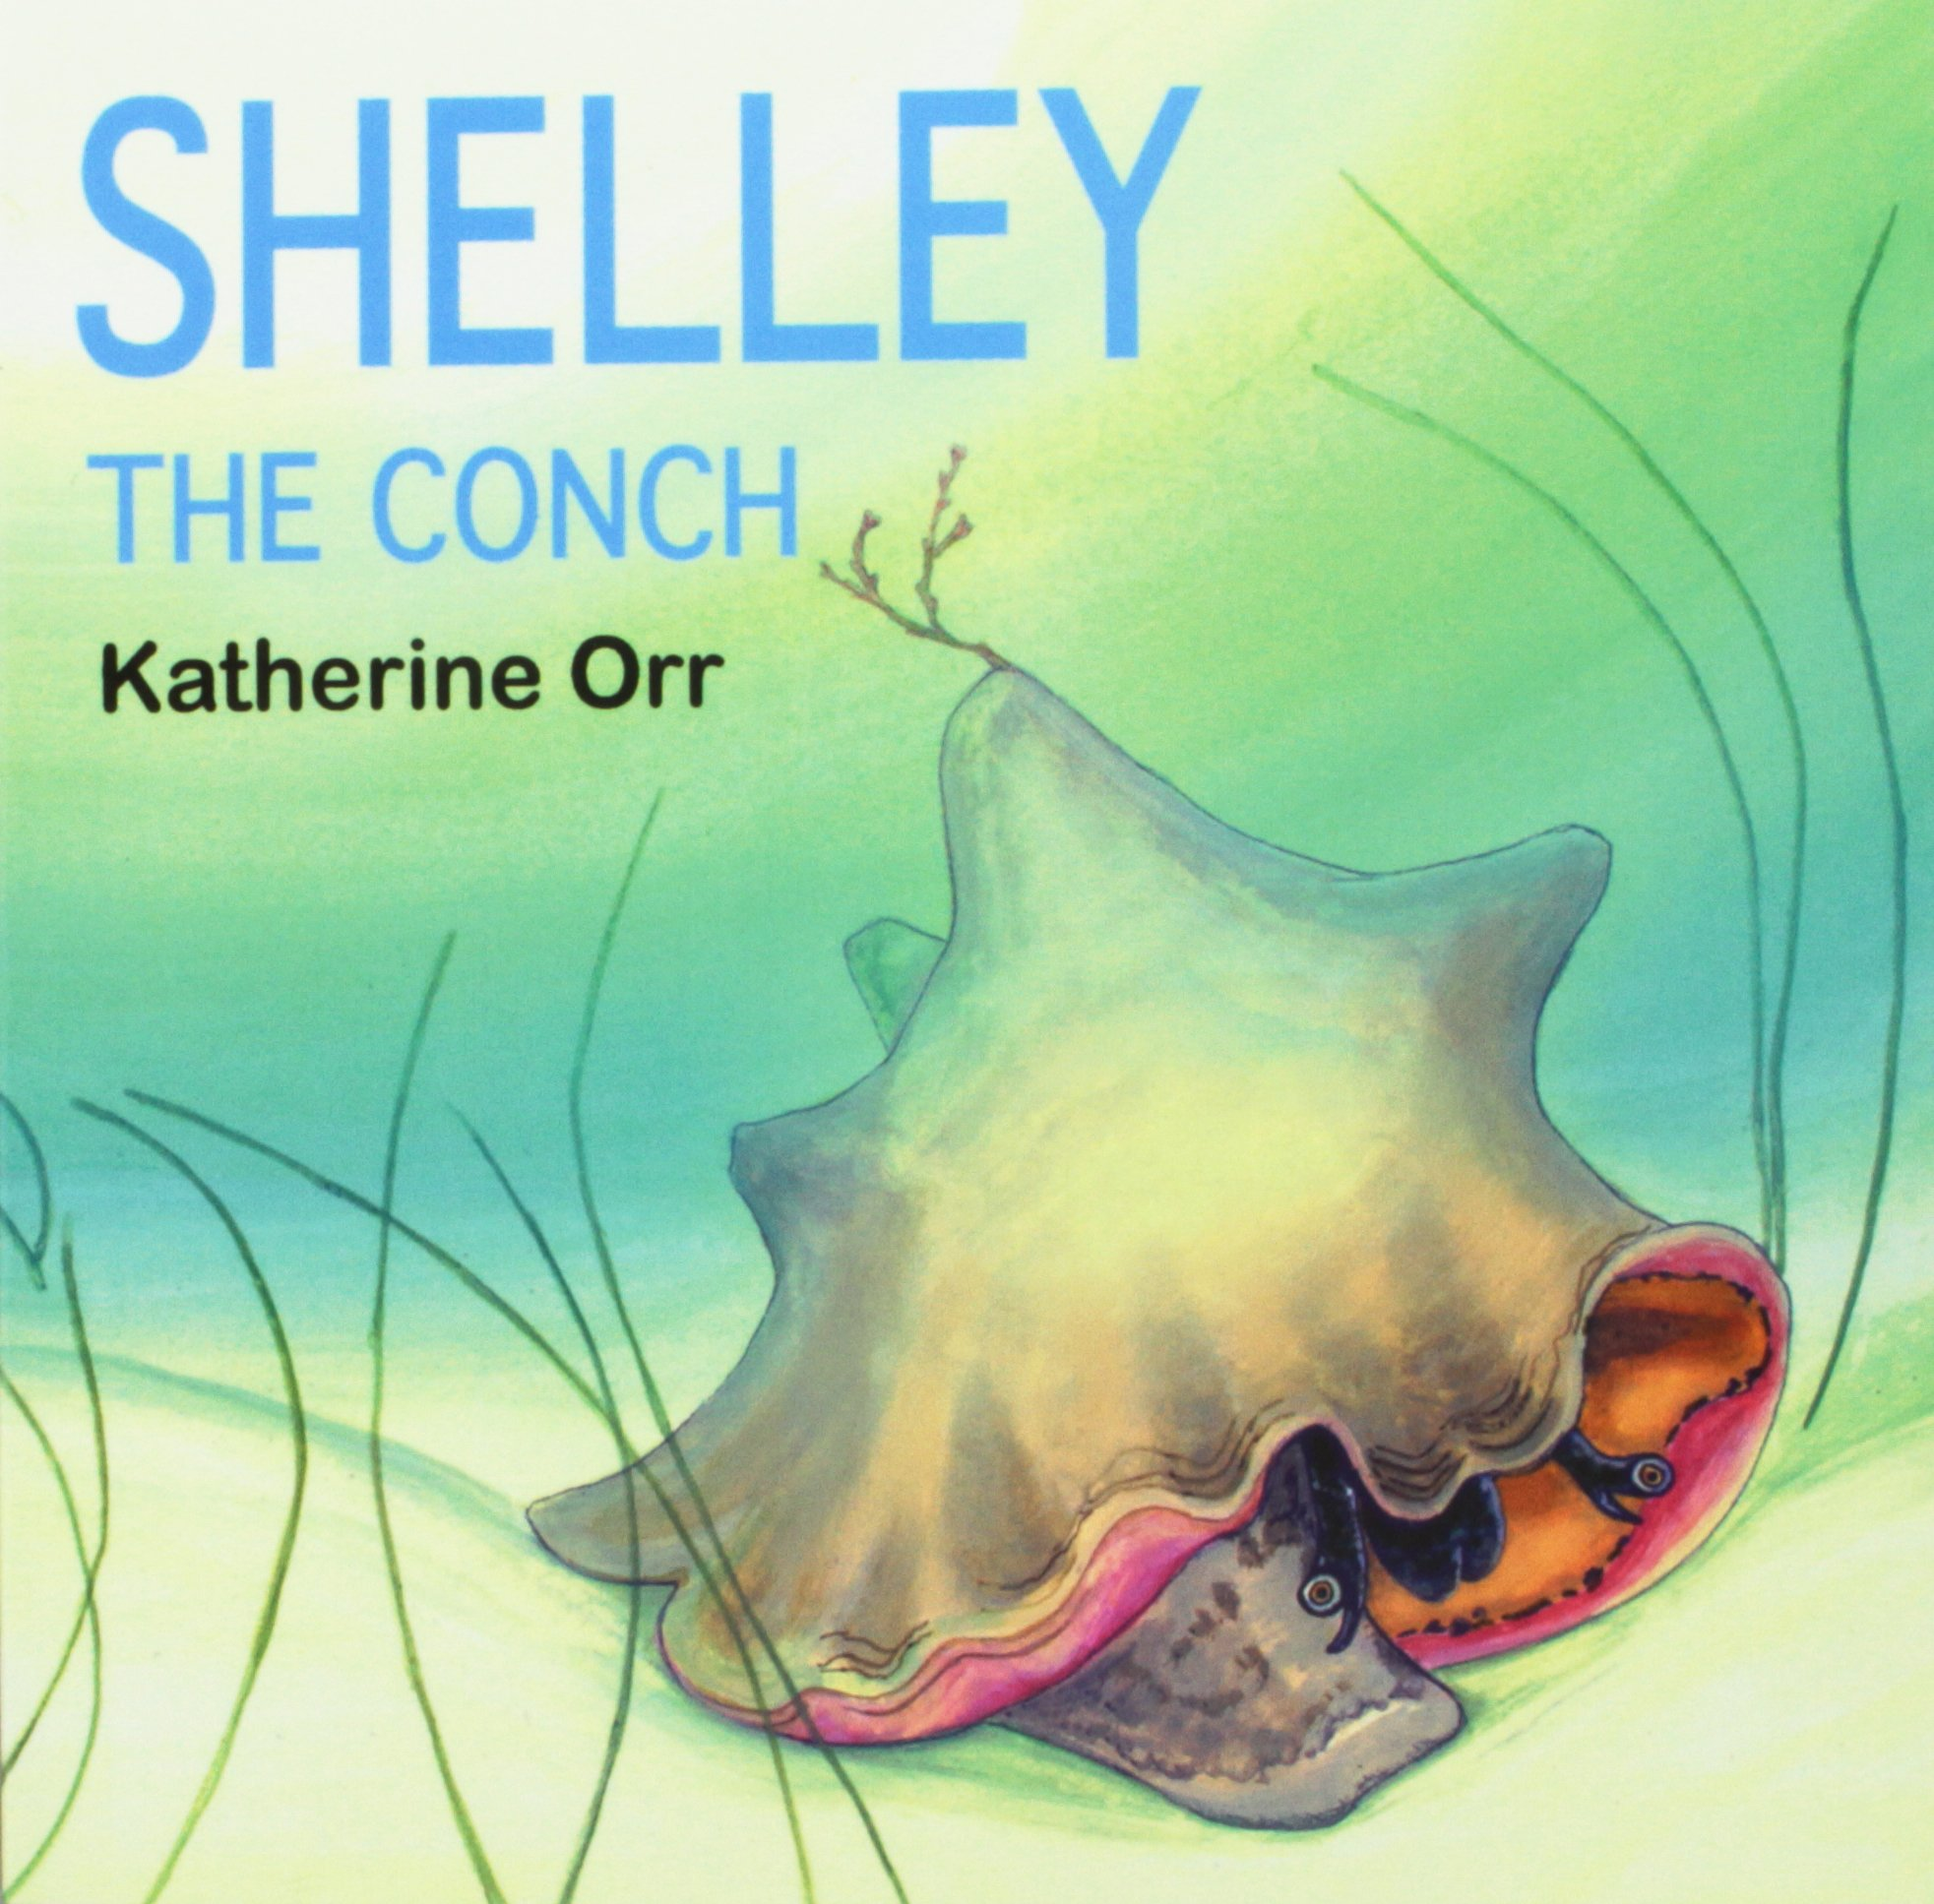 shelley-the-conch